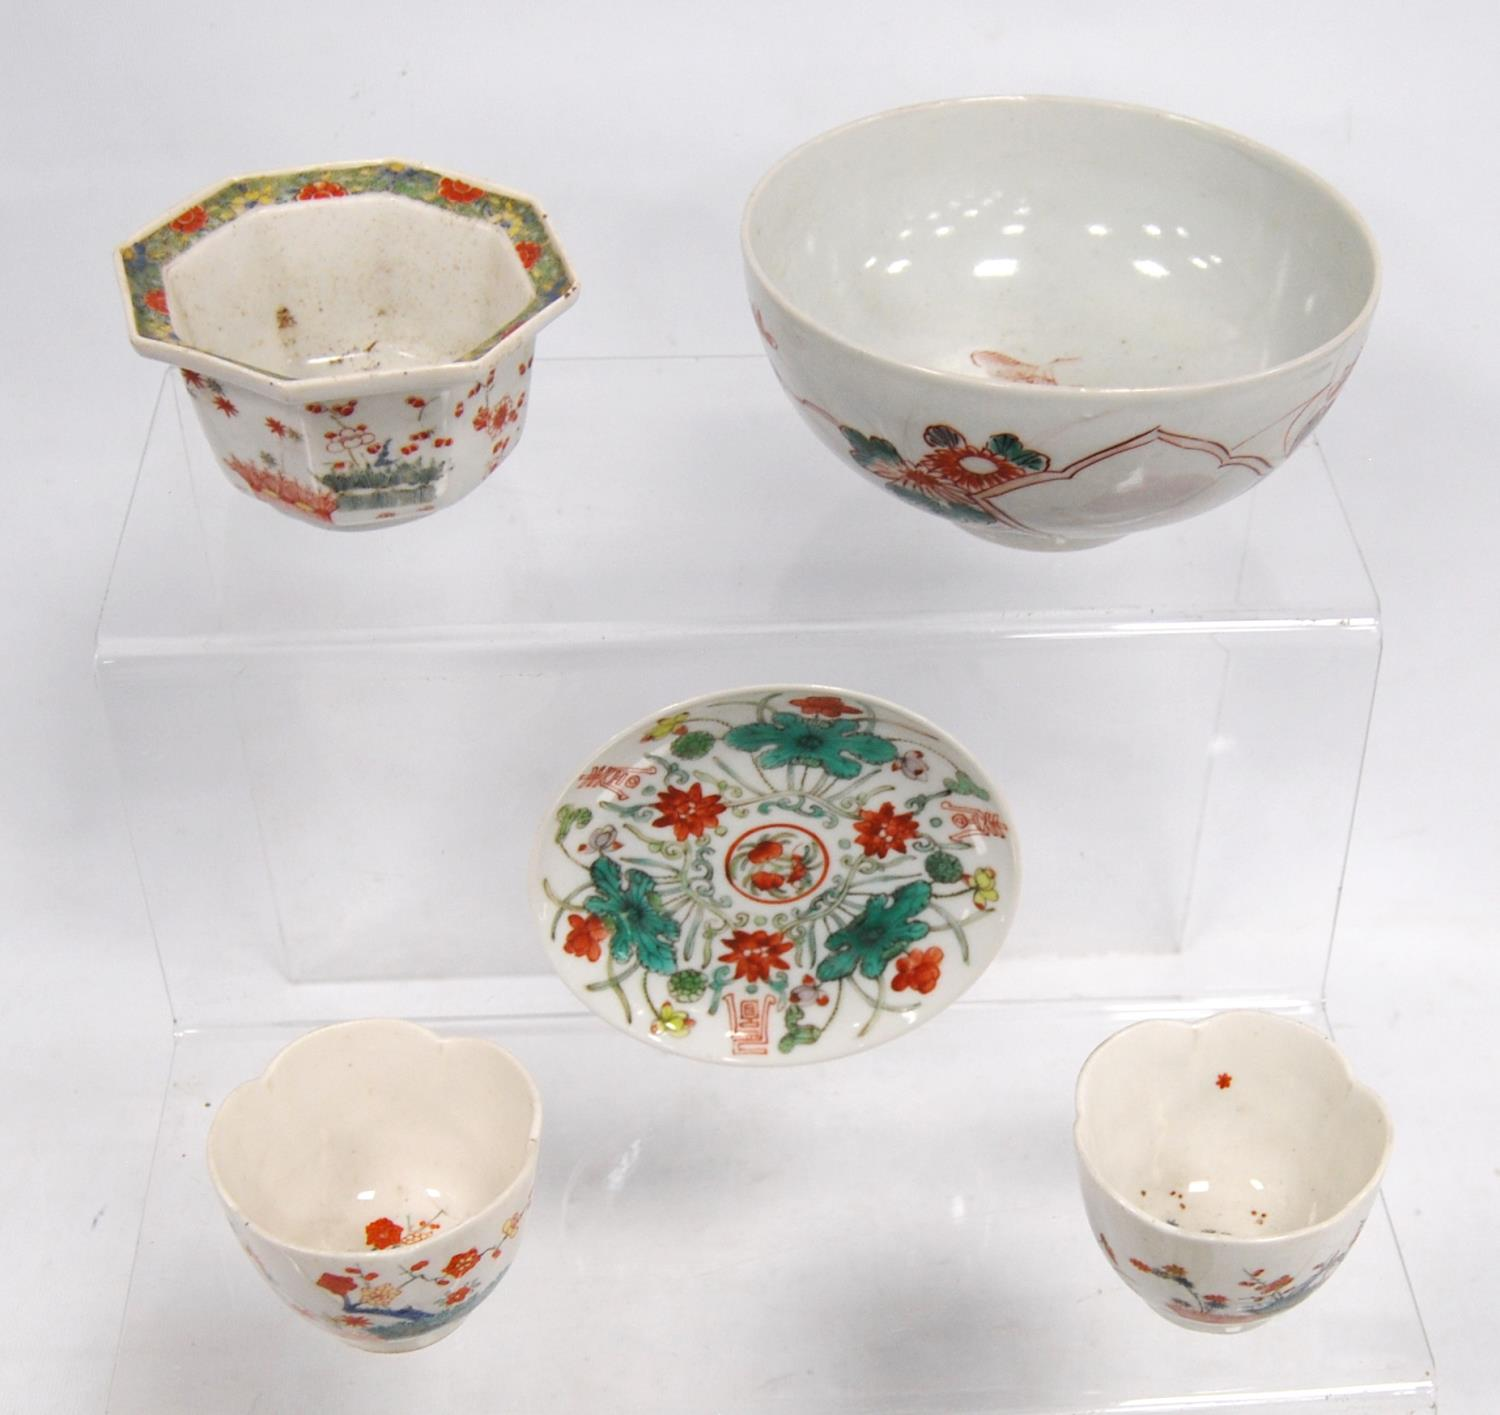 Two tea bowls, plate, octagonal bowl and a larger bowl, 14.5cm diameter. (5) - Image 2 of 3